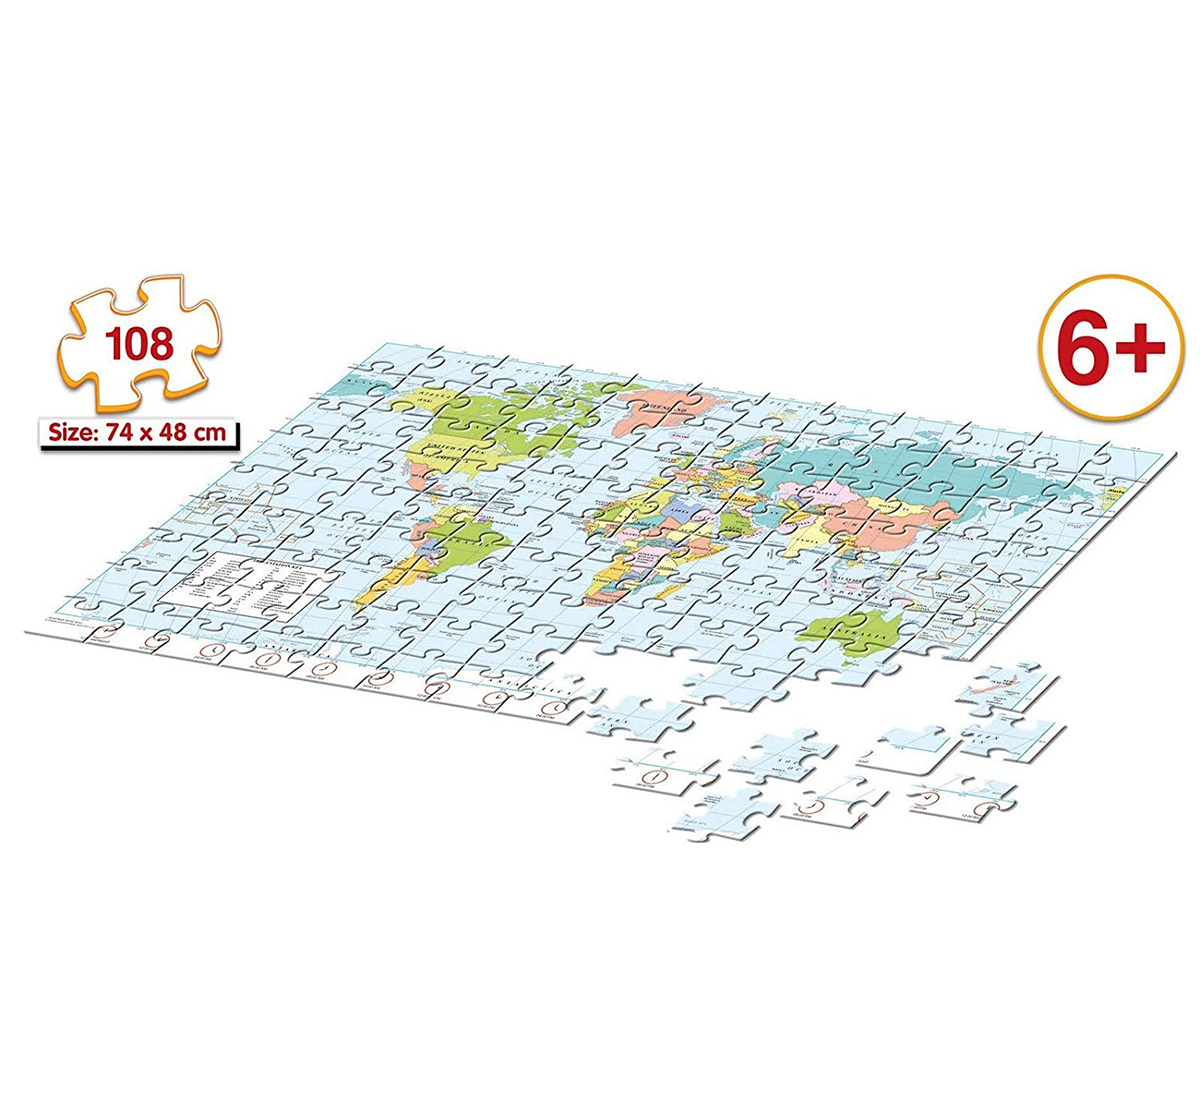 Frank | Frank 2 In 1 Map Puzzles for Kids age 6Y+